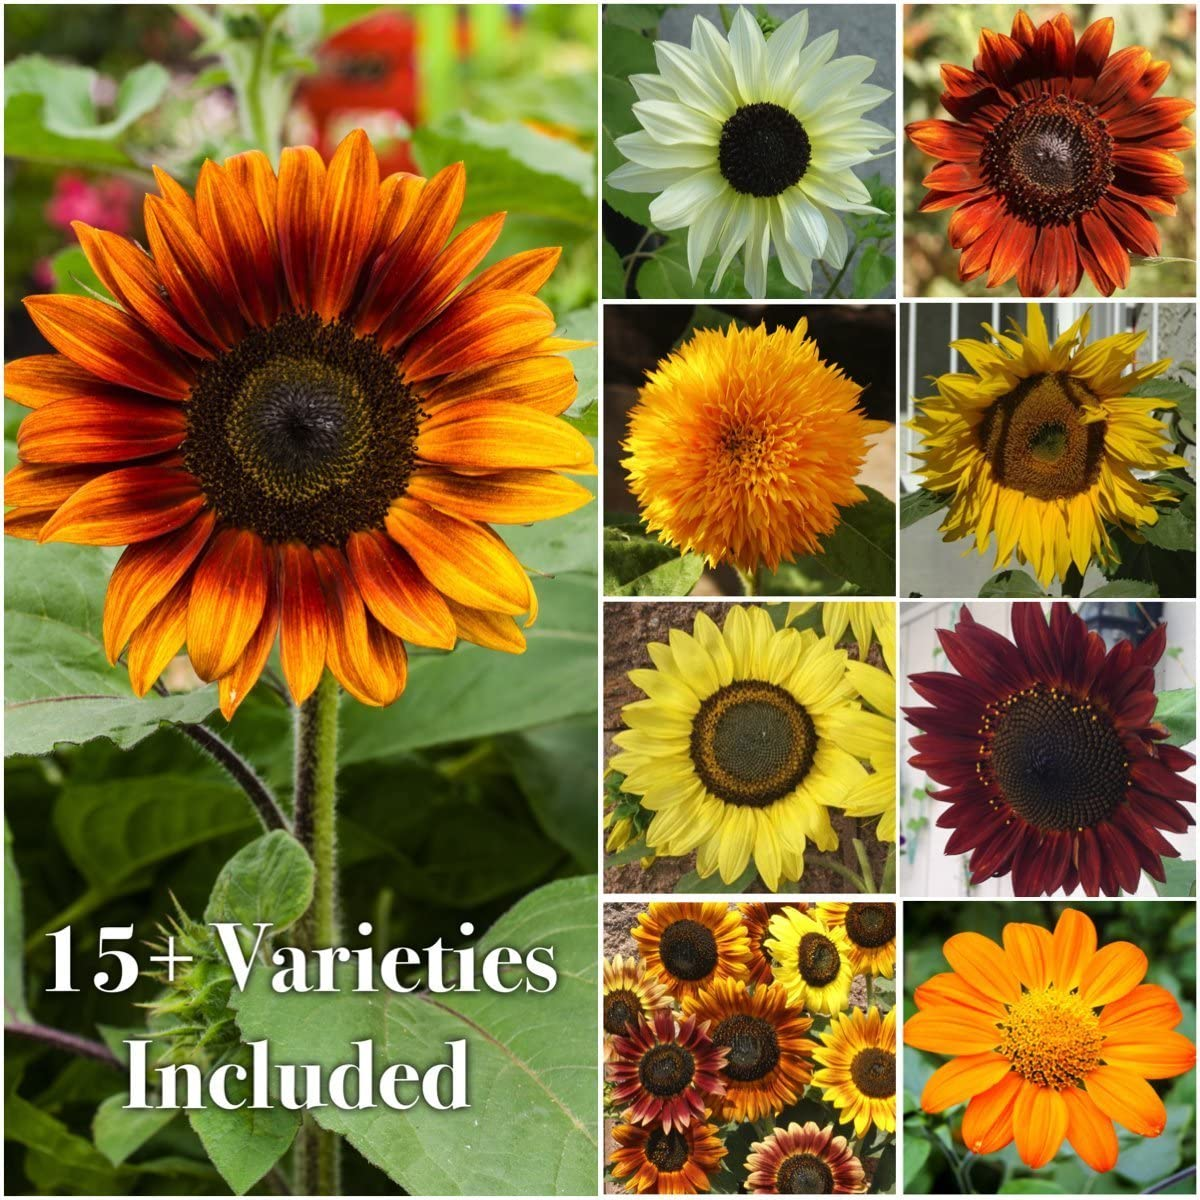 Seed Needs Bulk Package of 1,000+ Seeds, Sunflower Crazy Mixture 15+ Varieties (Helianthus annuus) Non-GMO Seeds